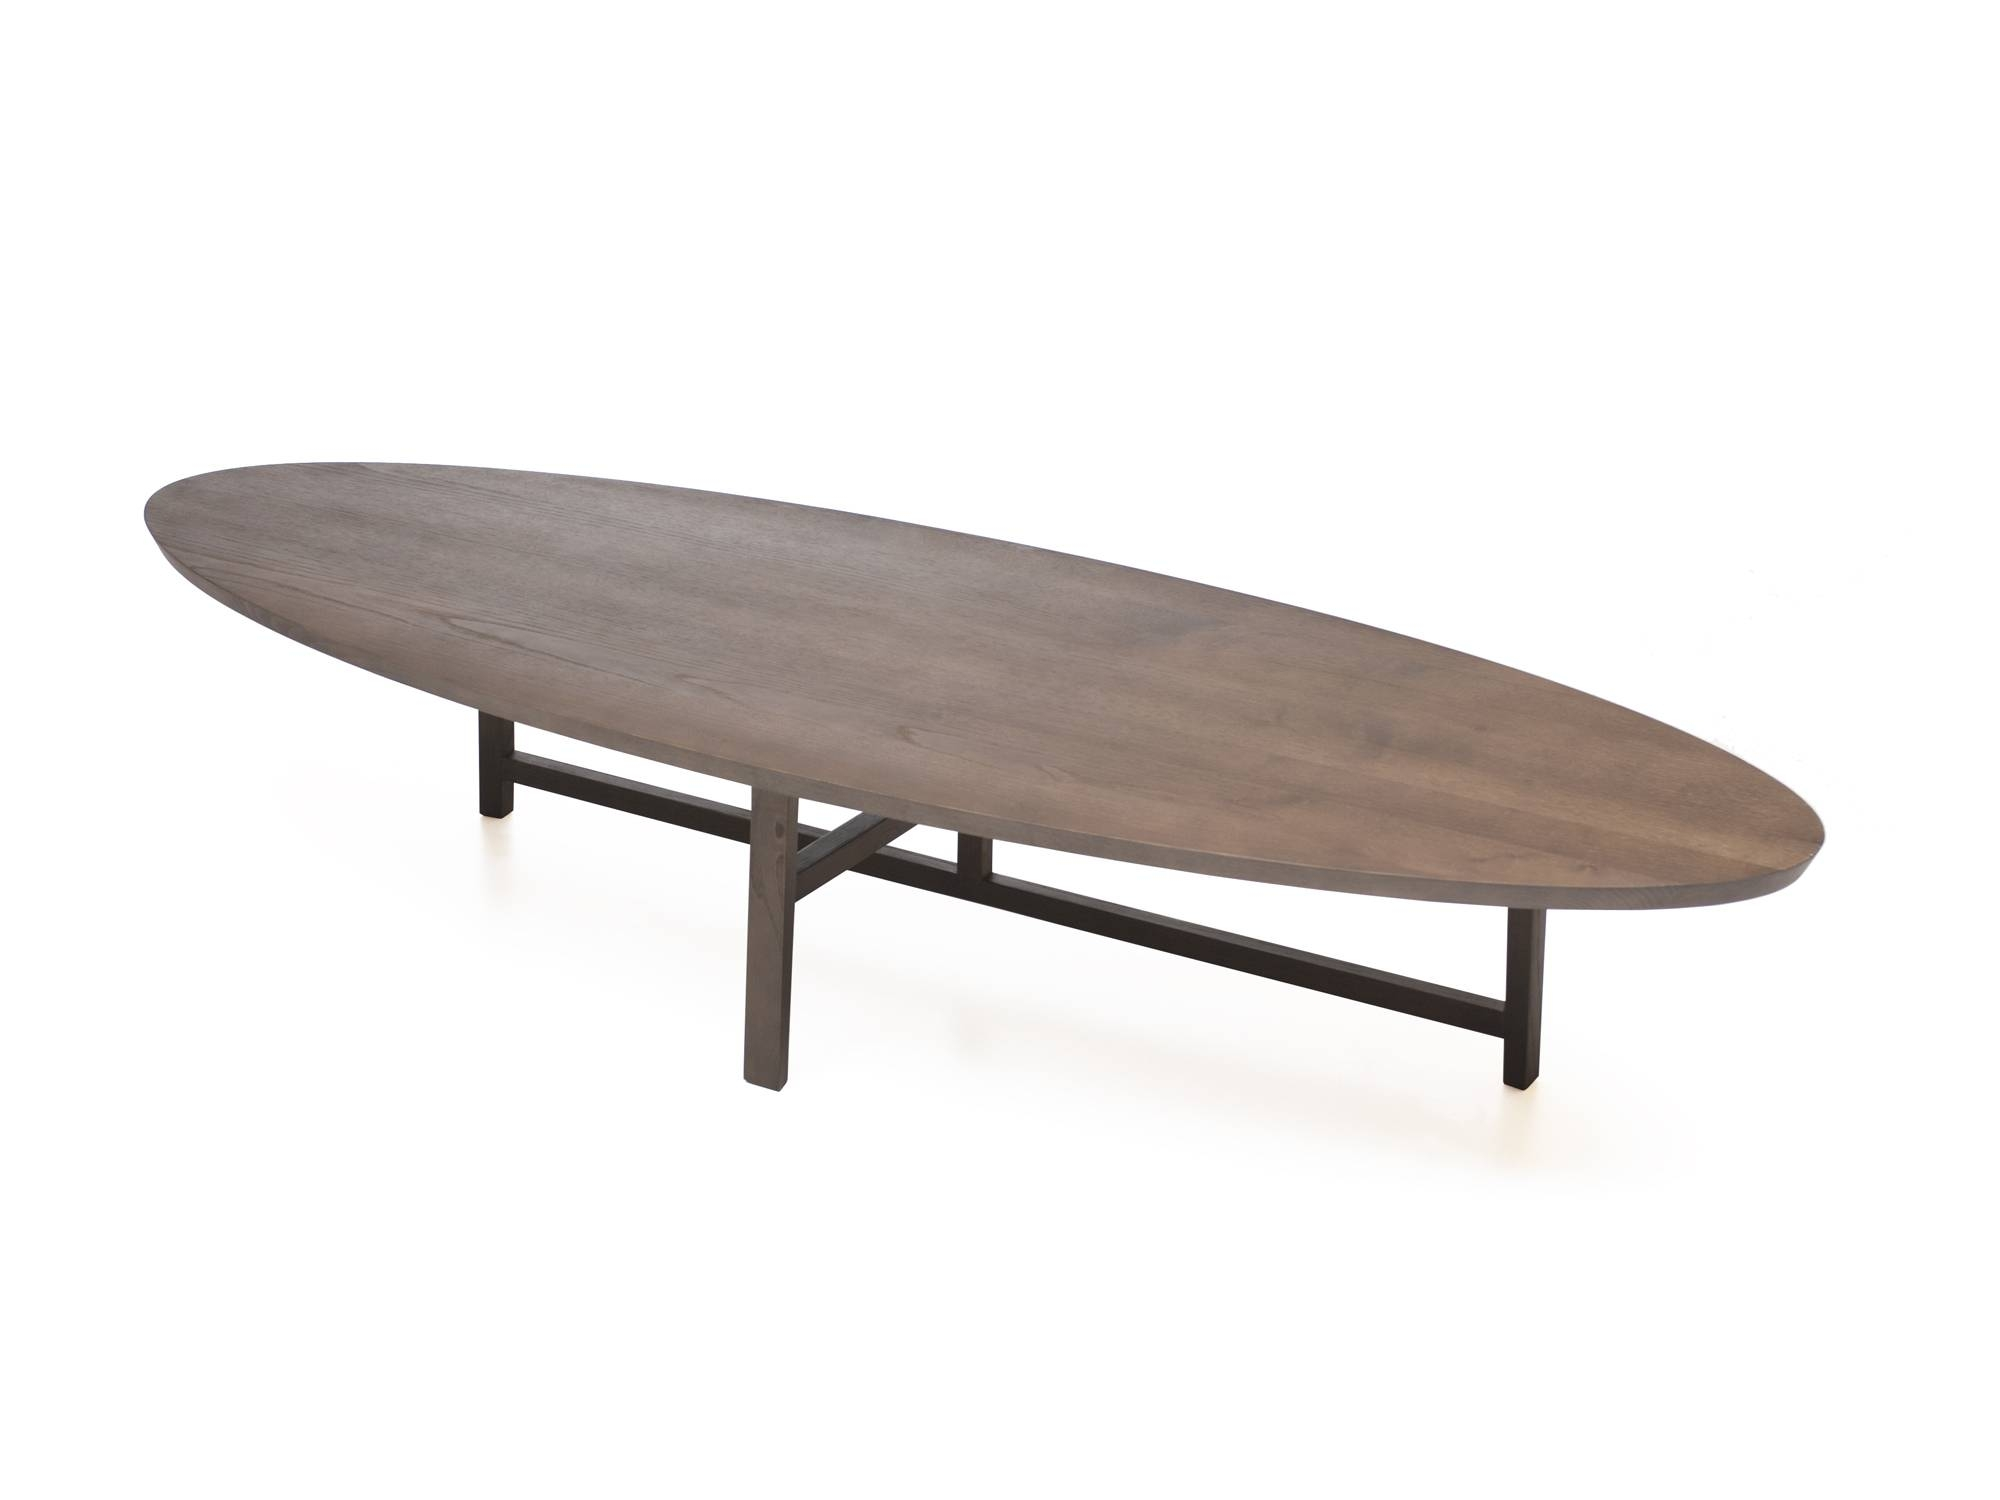 Coffee Table: Extraordinary Small Oval Coffee Table Idea Oval with regard to Oval Wood Coffee Tables (Image 6 of 30)